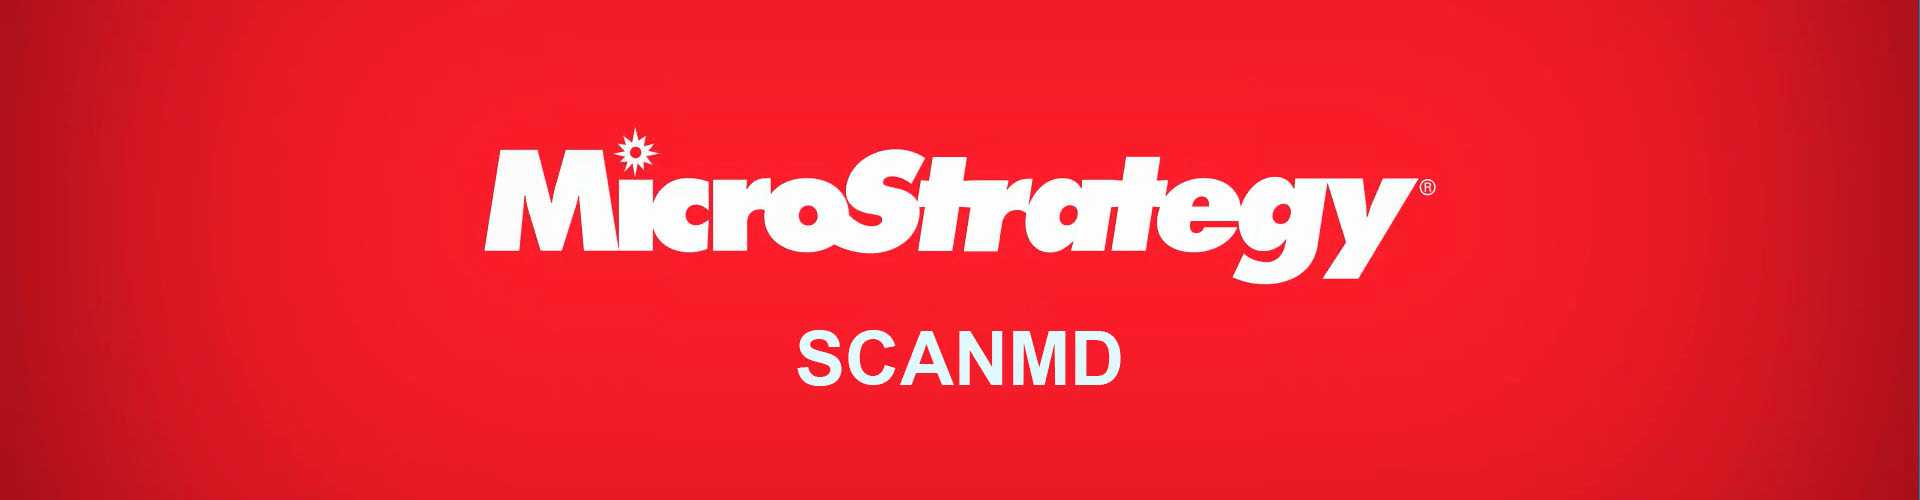 MicroStrategy ScanMD